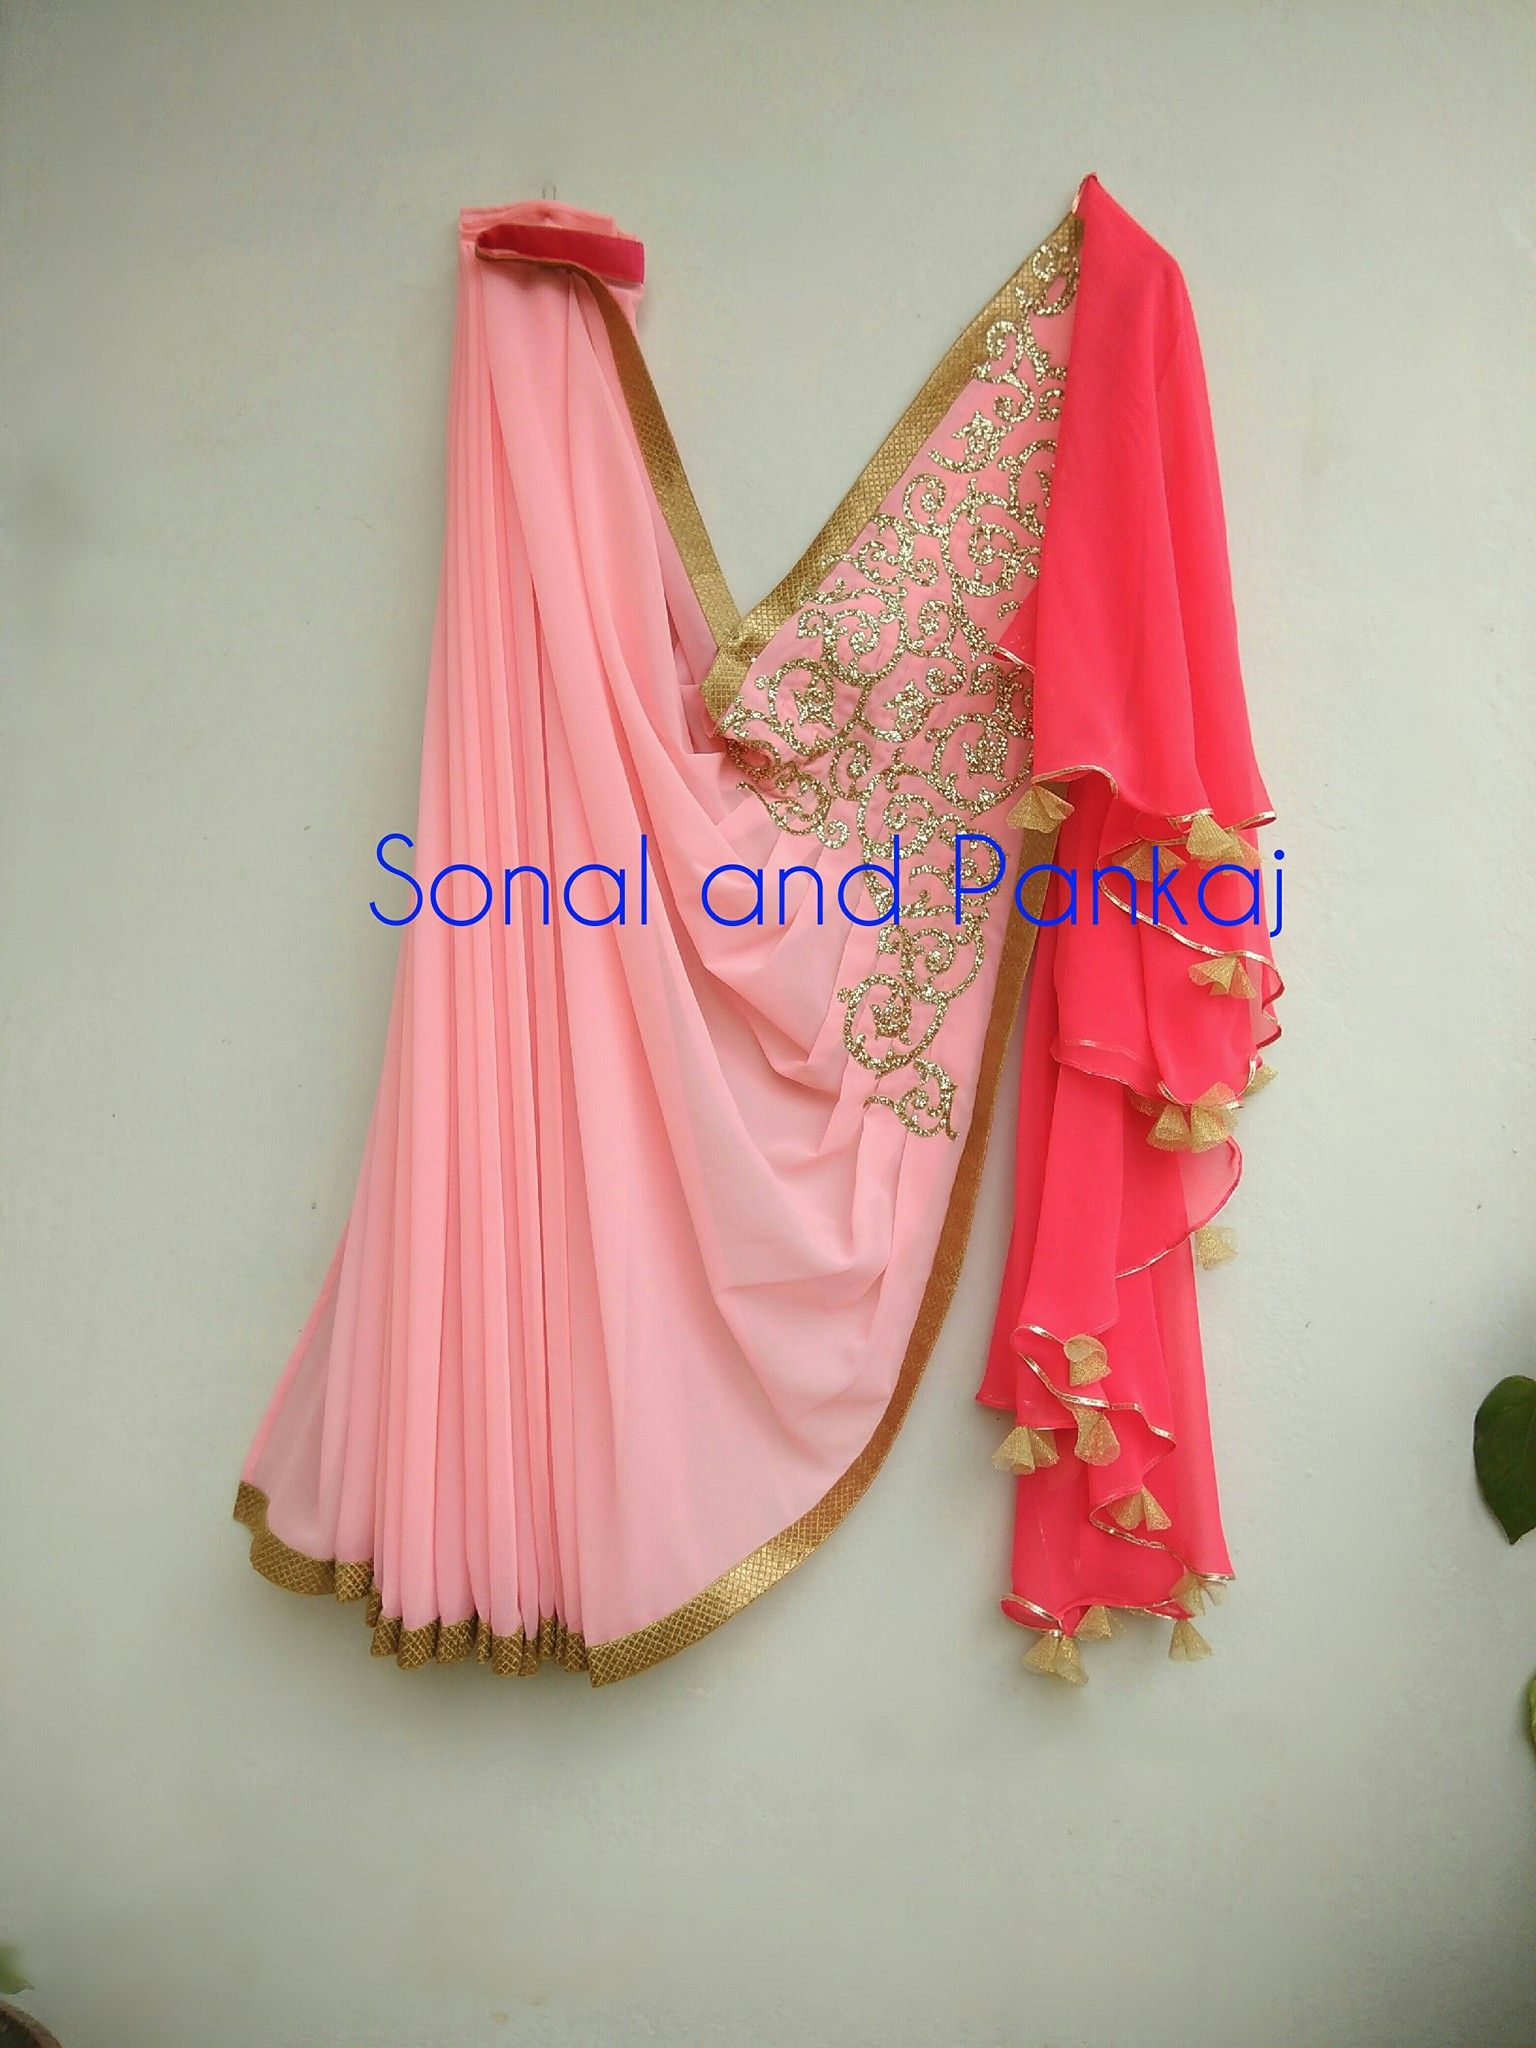 gorgeousness overloadedPrestitched saree with frilly back drop ...